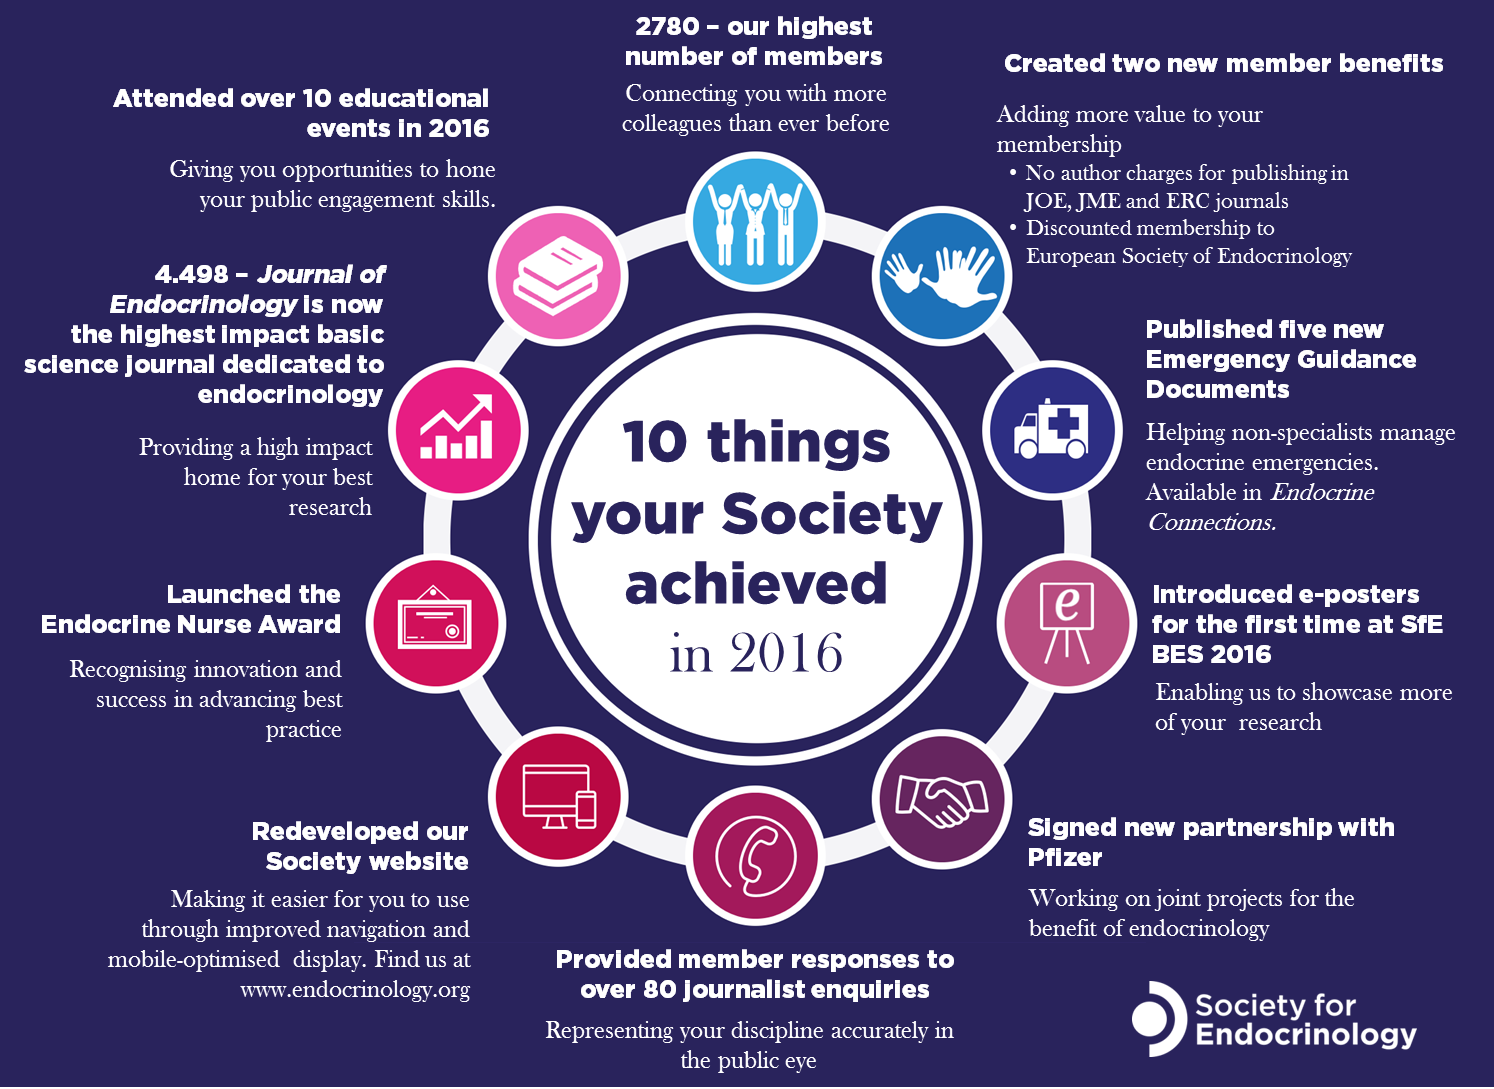 10ThingsYourSocietyAchieved2016.png